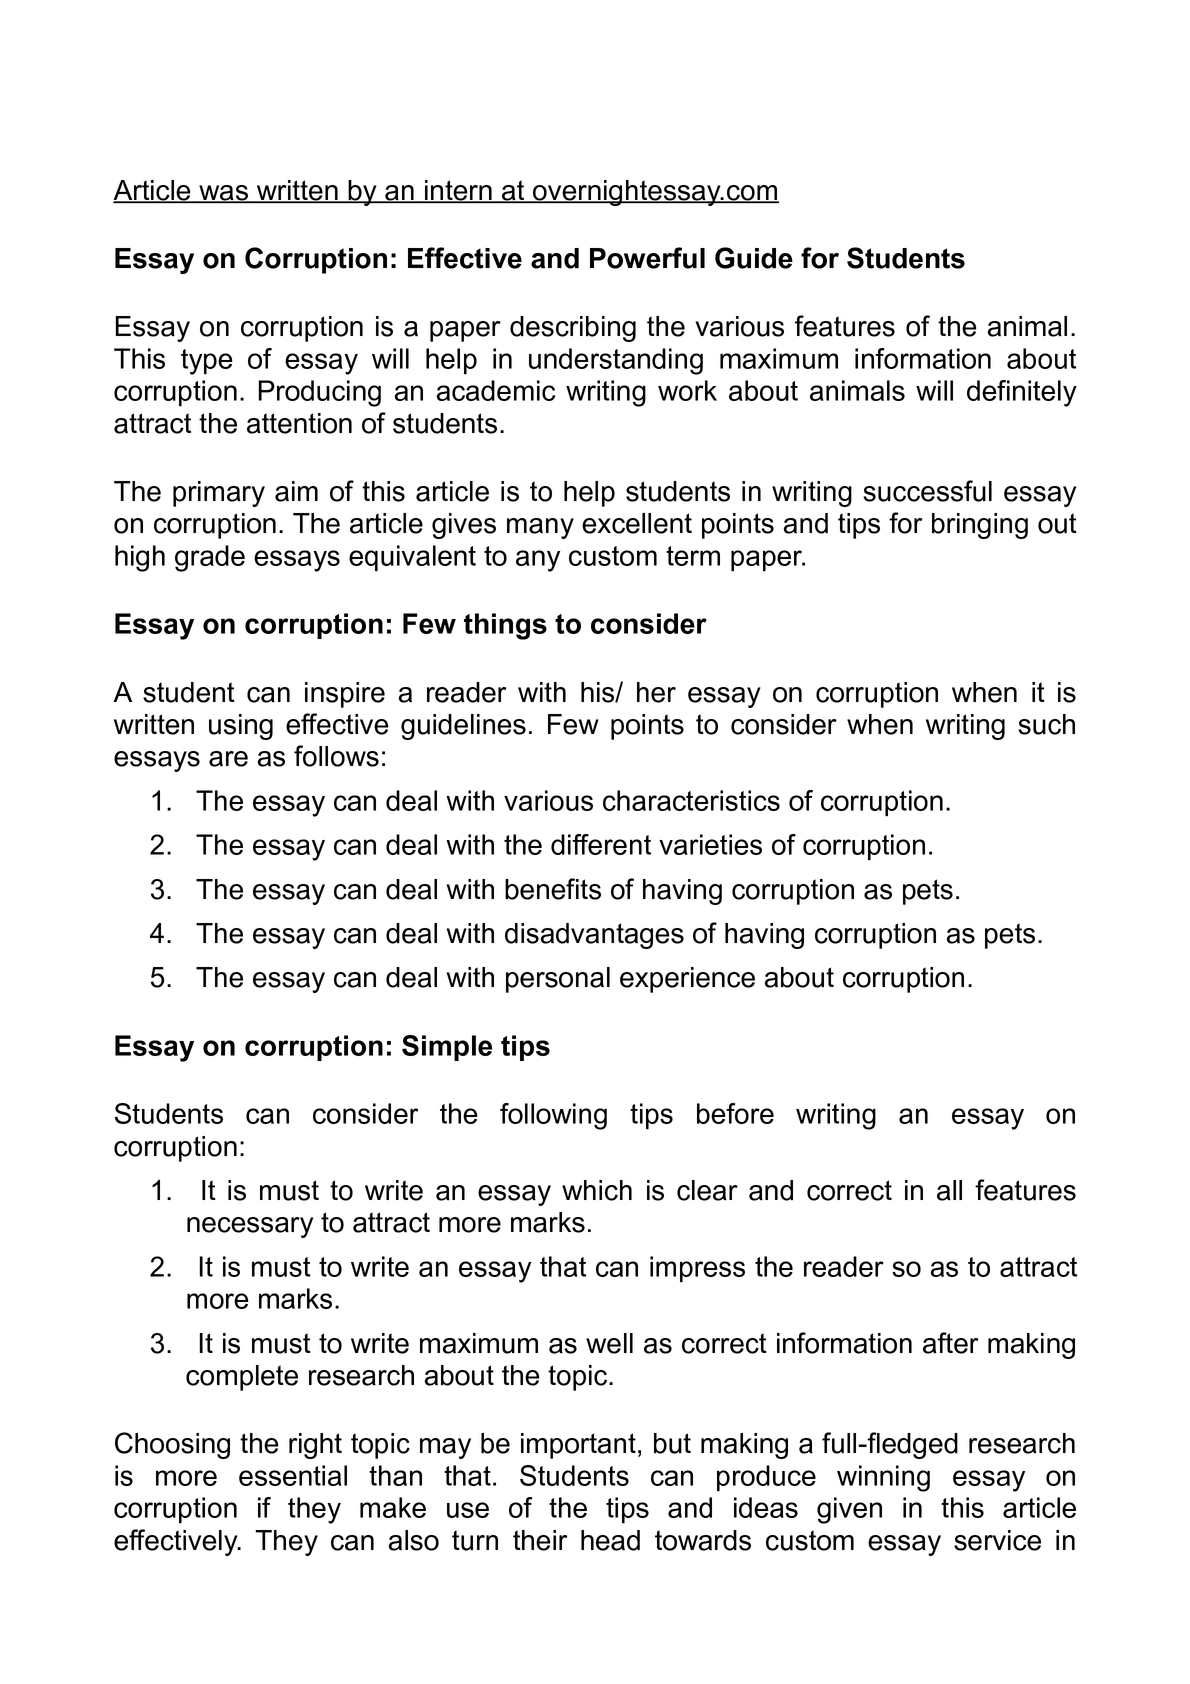 014 Reflective Essay Rubric Example Correct Writing Examples Topics Proper Form Marvelous Week 2 Guidelines With Scoring Marking Assessment Full